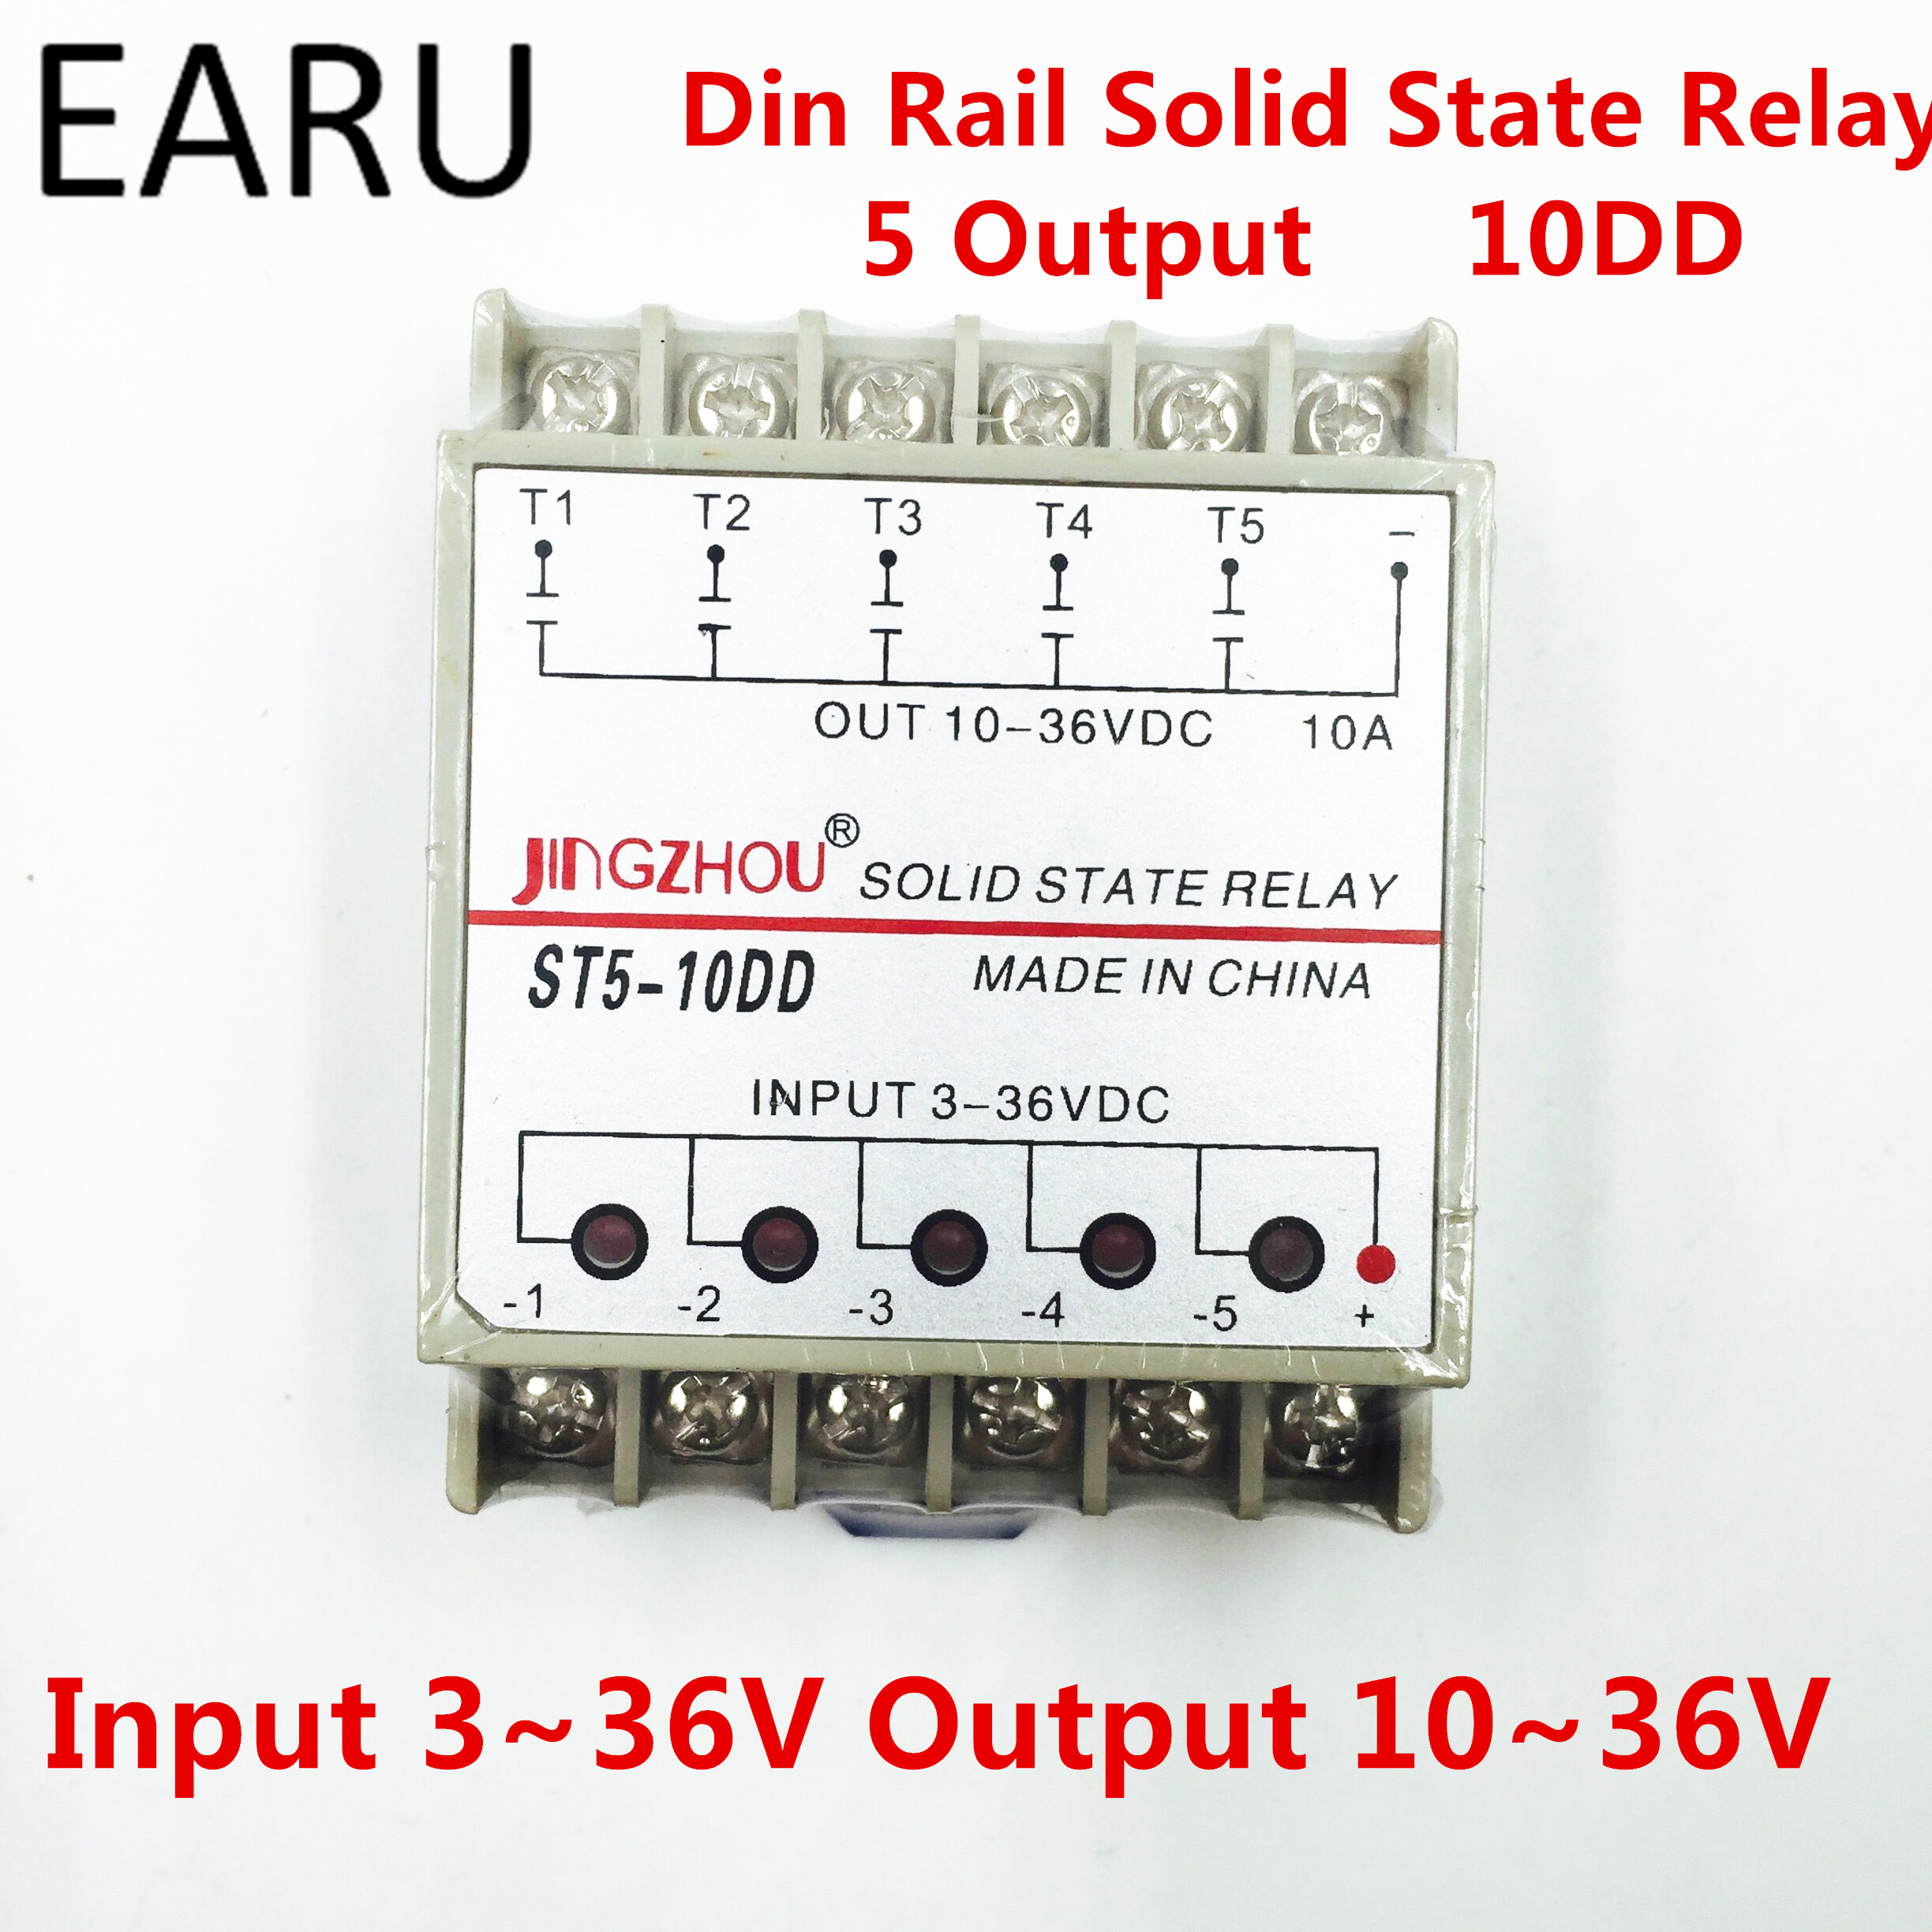 10DD 5 Channel Din rail SSR quintuplicate five input 3~36VDC output 10~36VDC single phase DC solid state relay normally open single phase solid state relay ssr mgr 1 d48120 120a control dc ac 24 480v